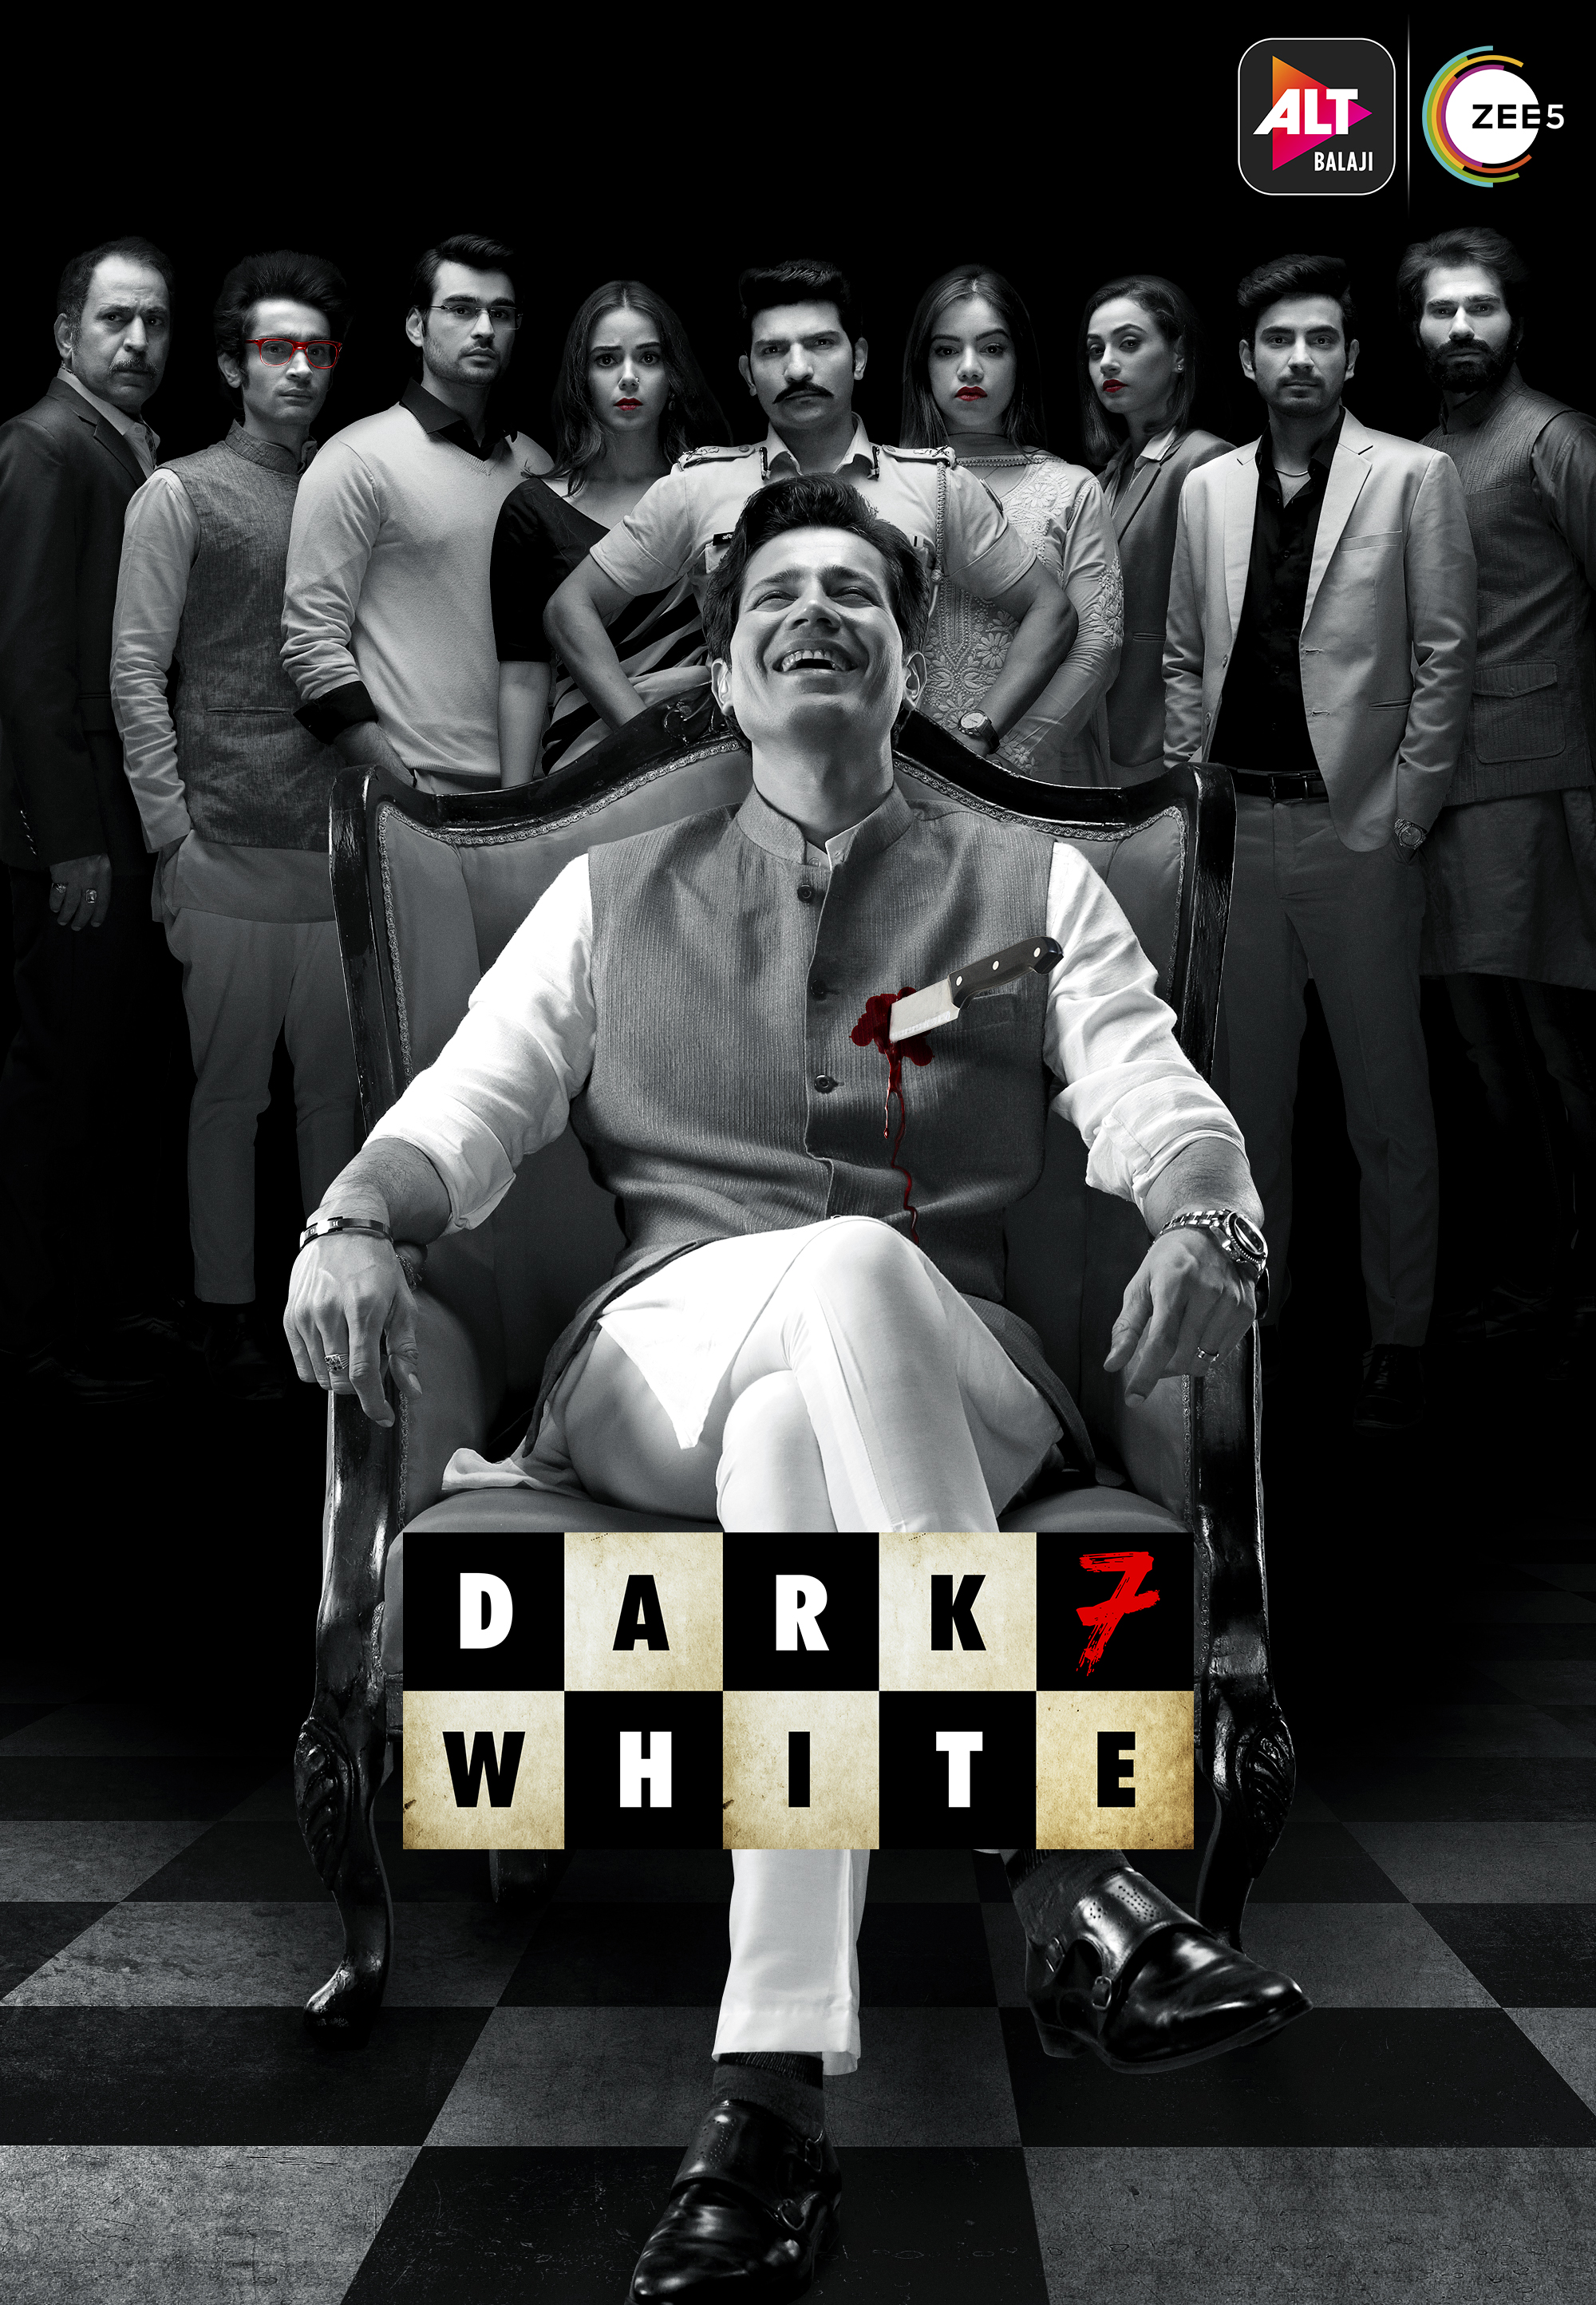 Download Dark 7 White (2020) S01 Hindi Complete ALTBalaji Original Web Series 720p HDRip 1.2GB